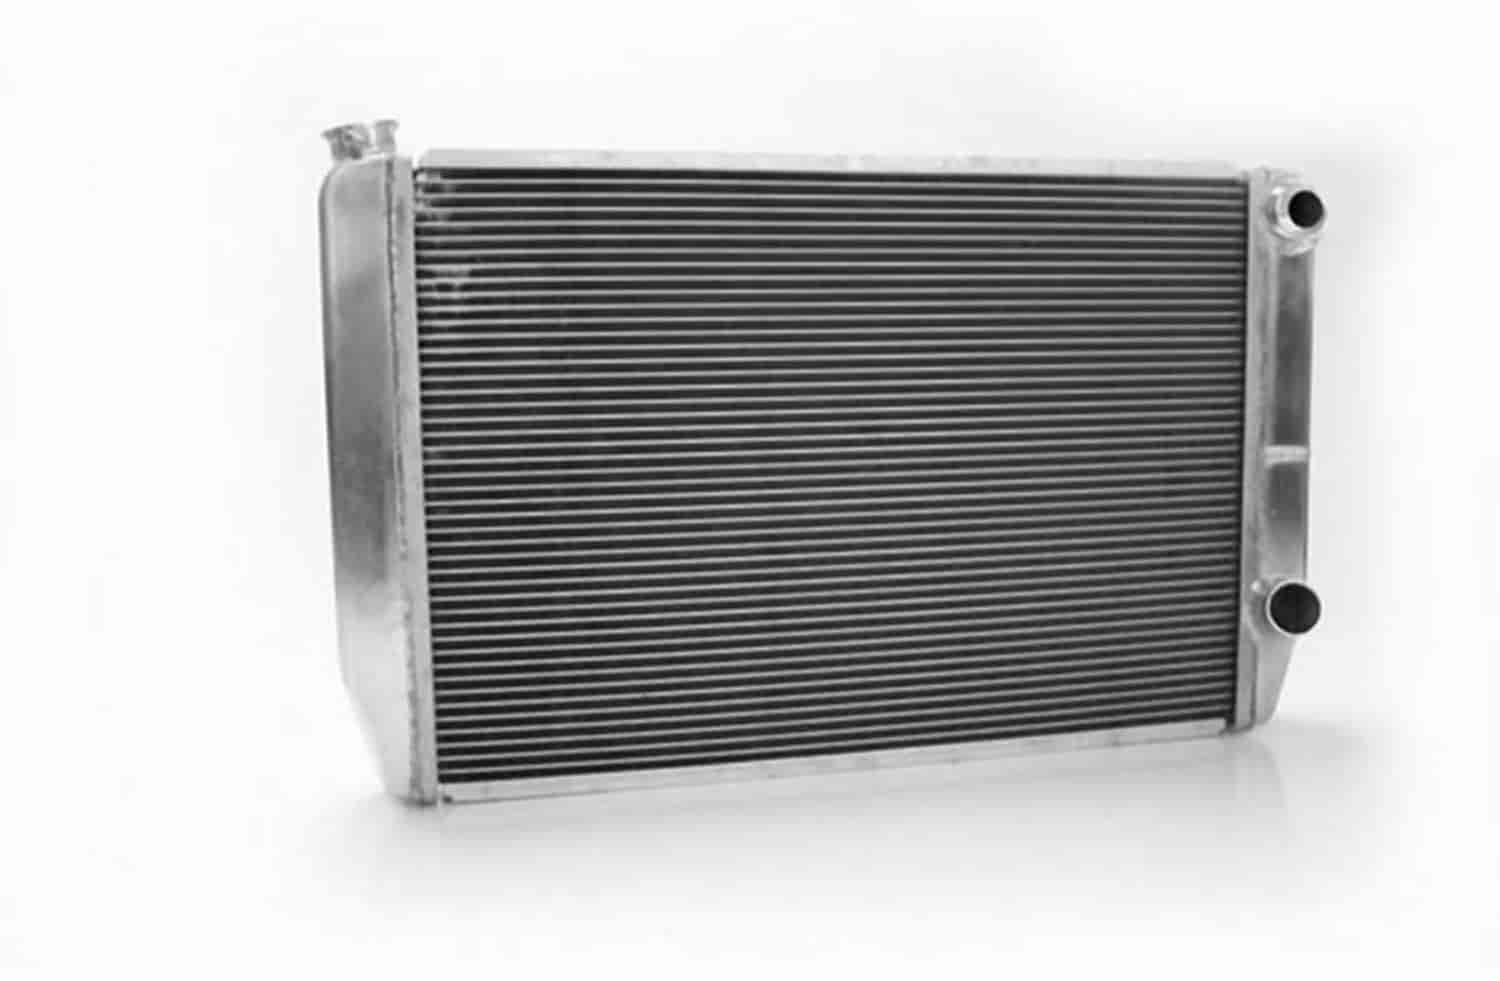 Griffin Radiators 1-28272-F